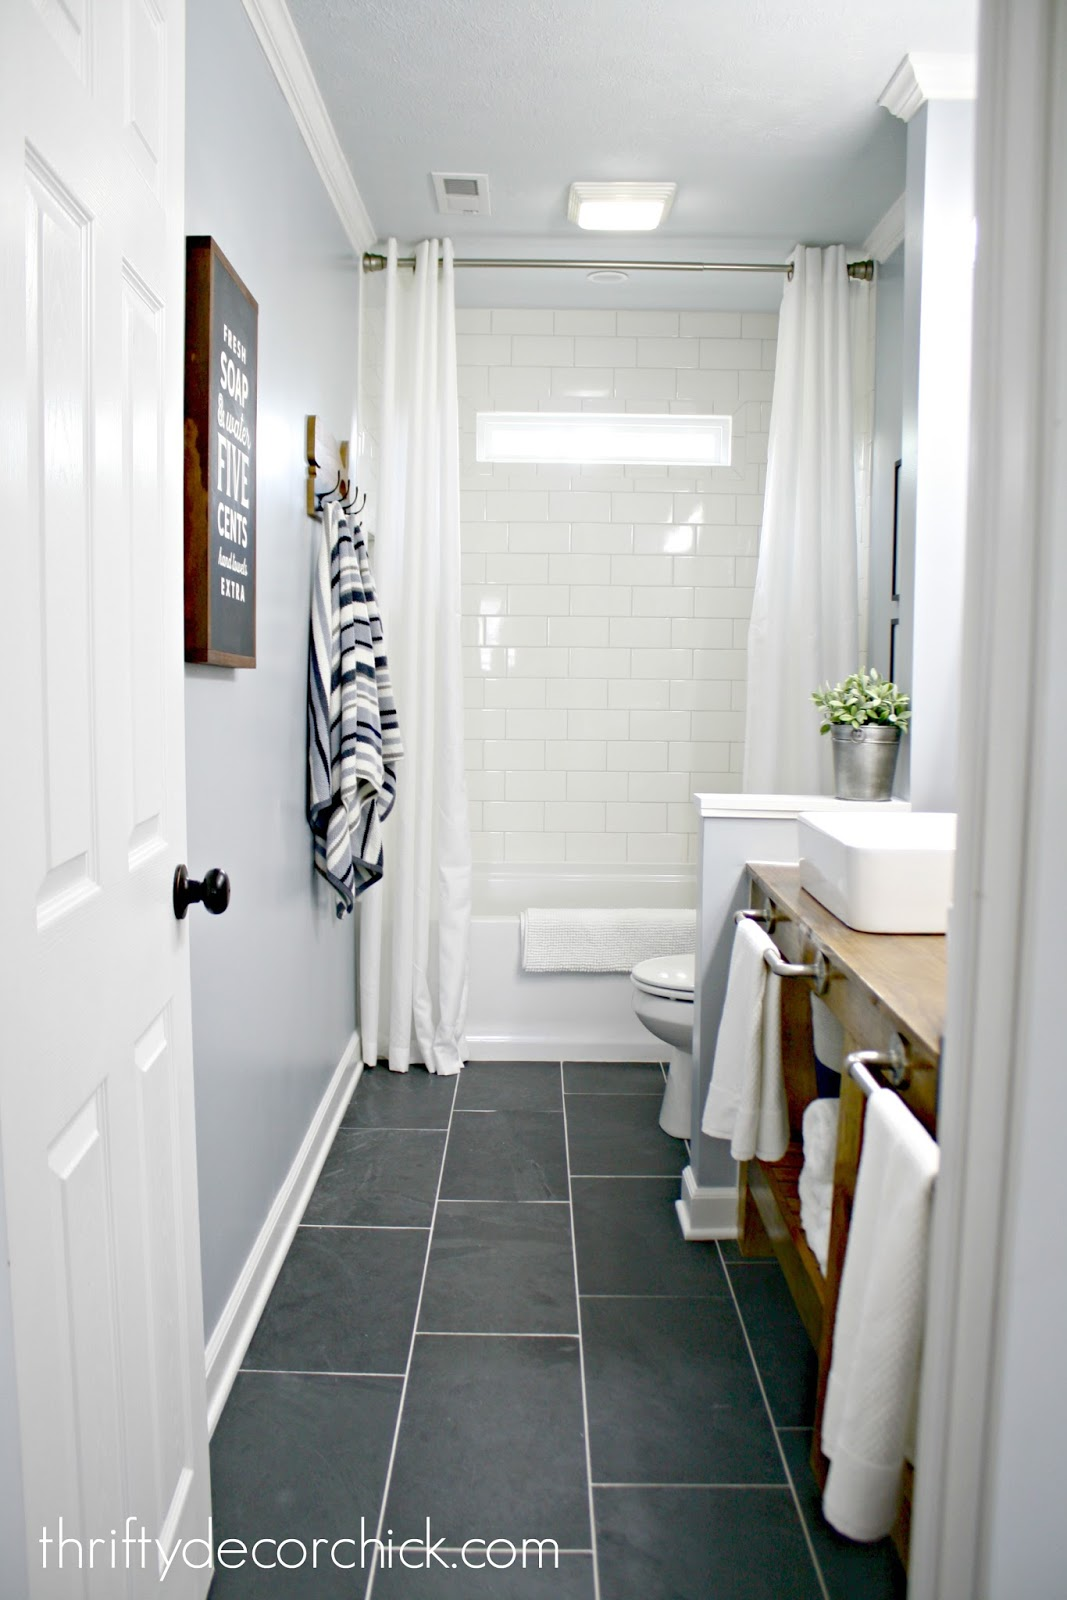 Great Bathroom reveal after knocking out a wall